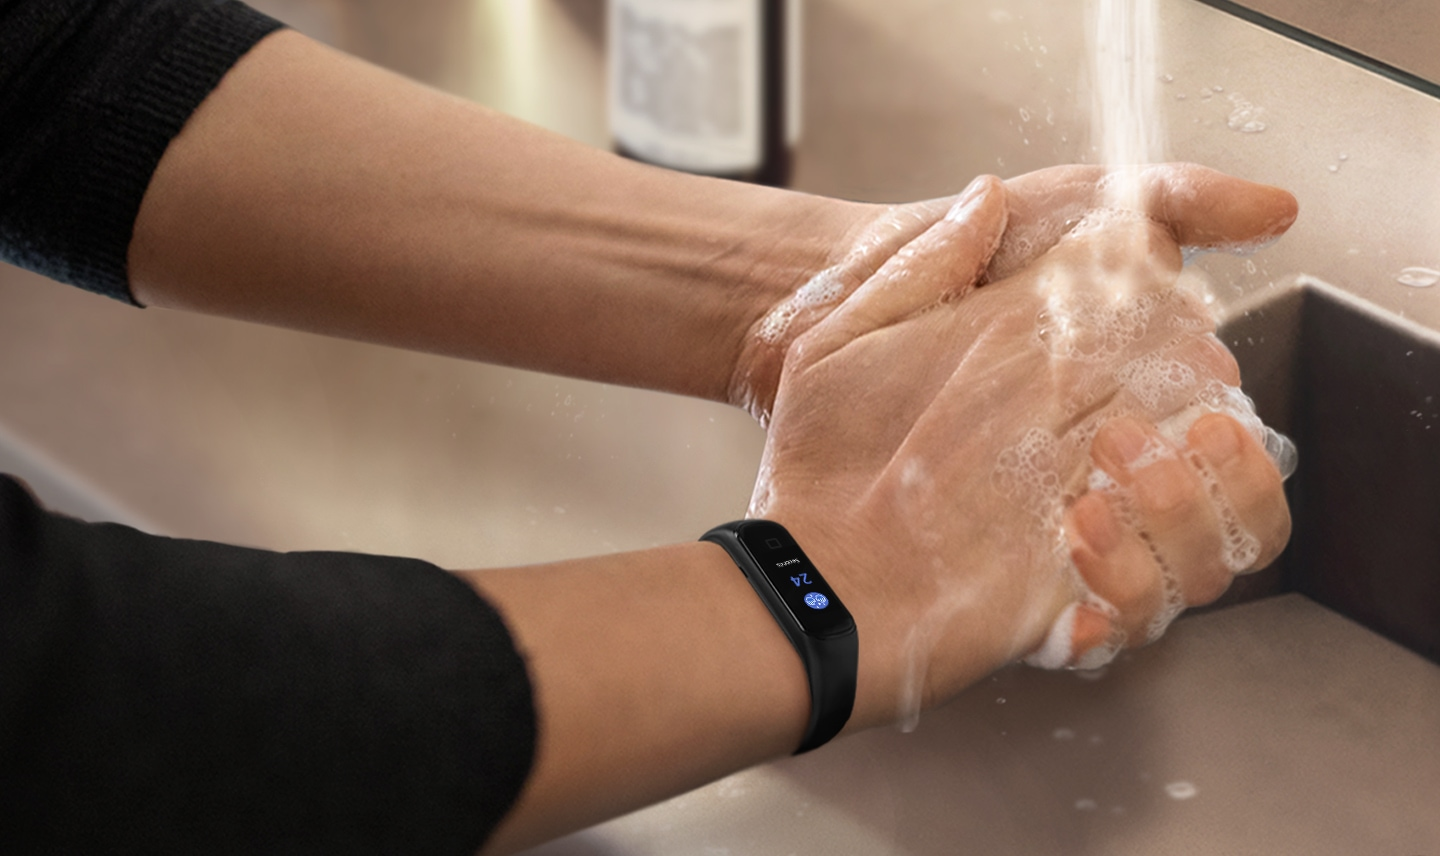 You can see a close-up of a person washing their hands with a black Galaxy Fit2 on their wrist that shows a countdown.